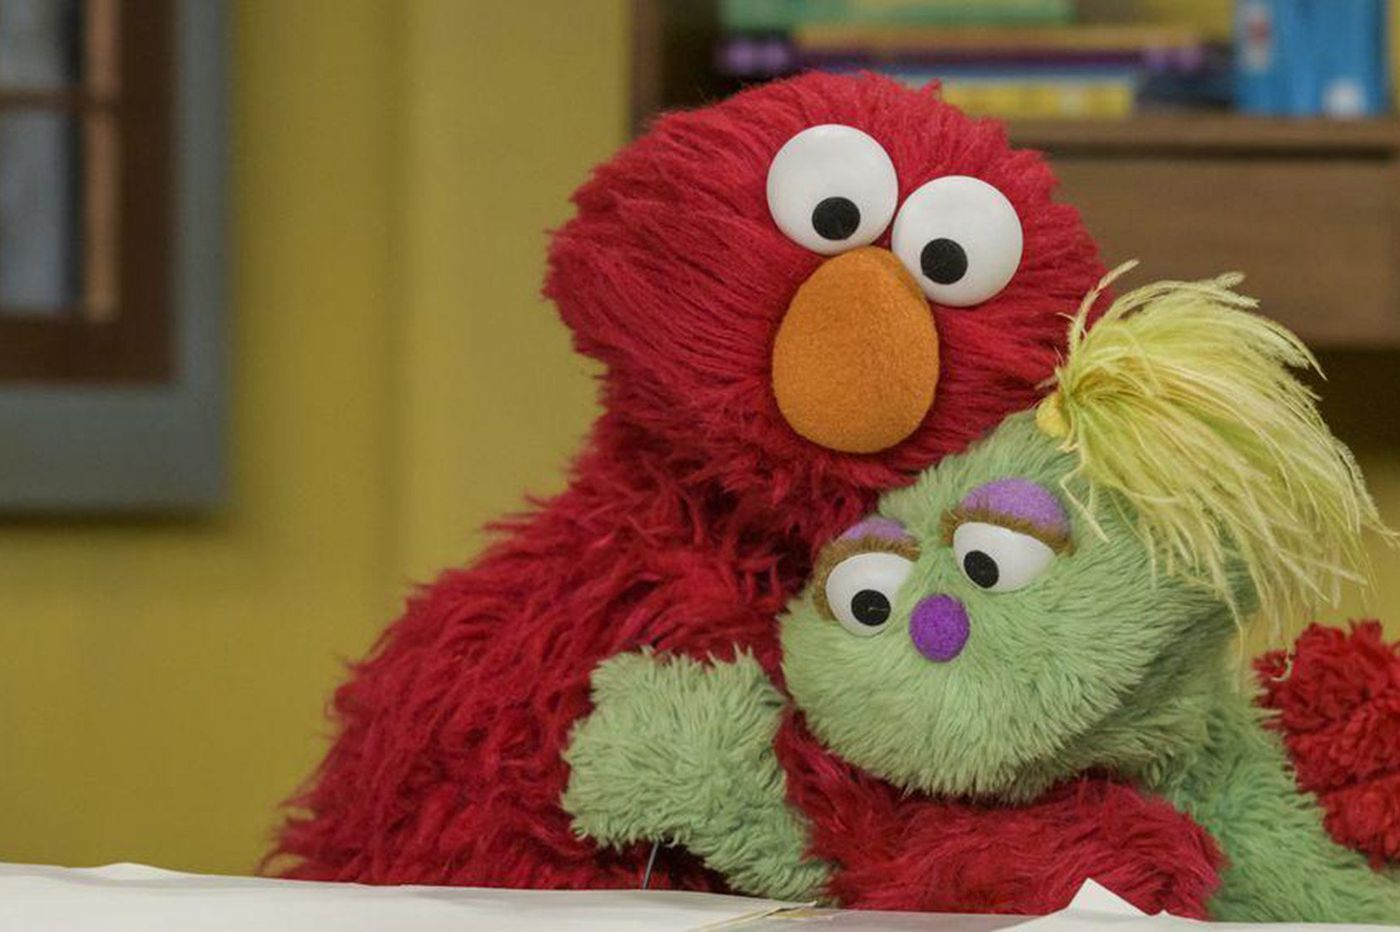 Why 'Sesame Street' is smarter about foster care than your local child welfare agency | Opinion